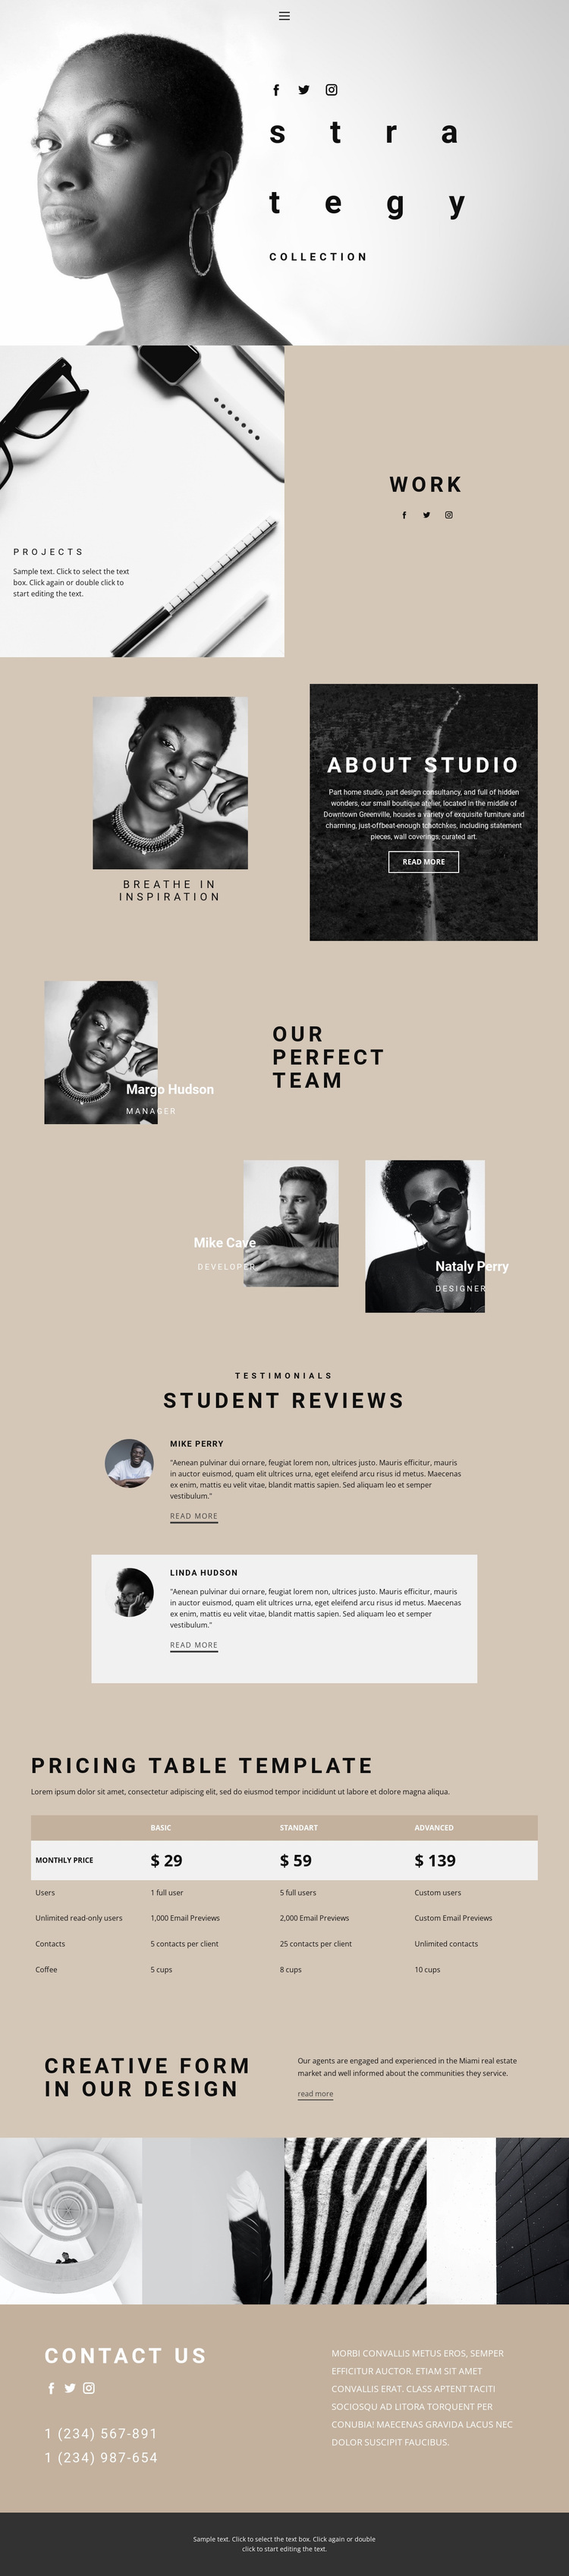 Strategy and grow Website Design